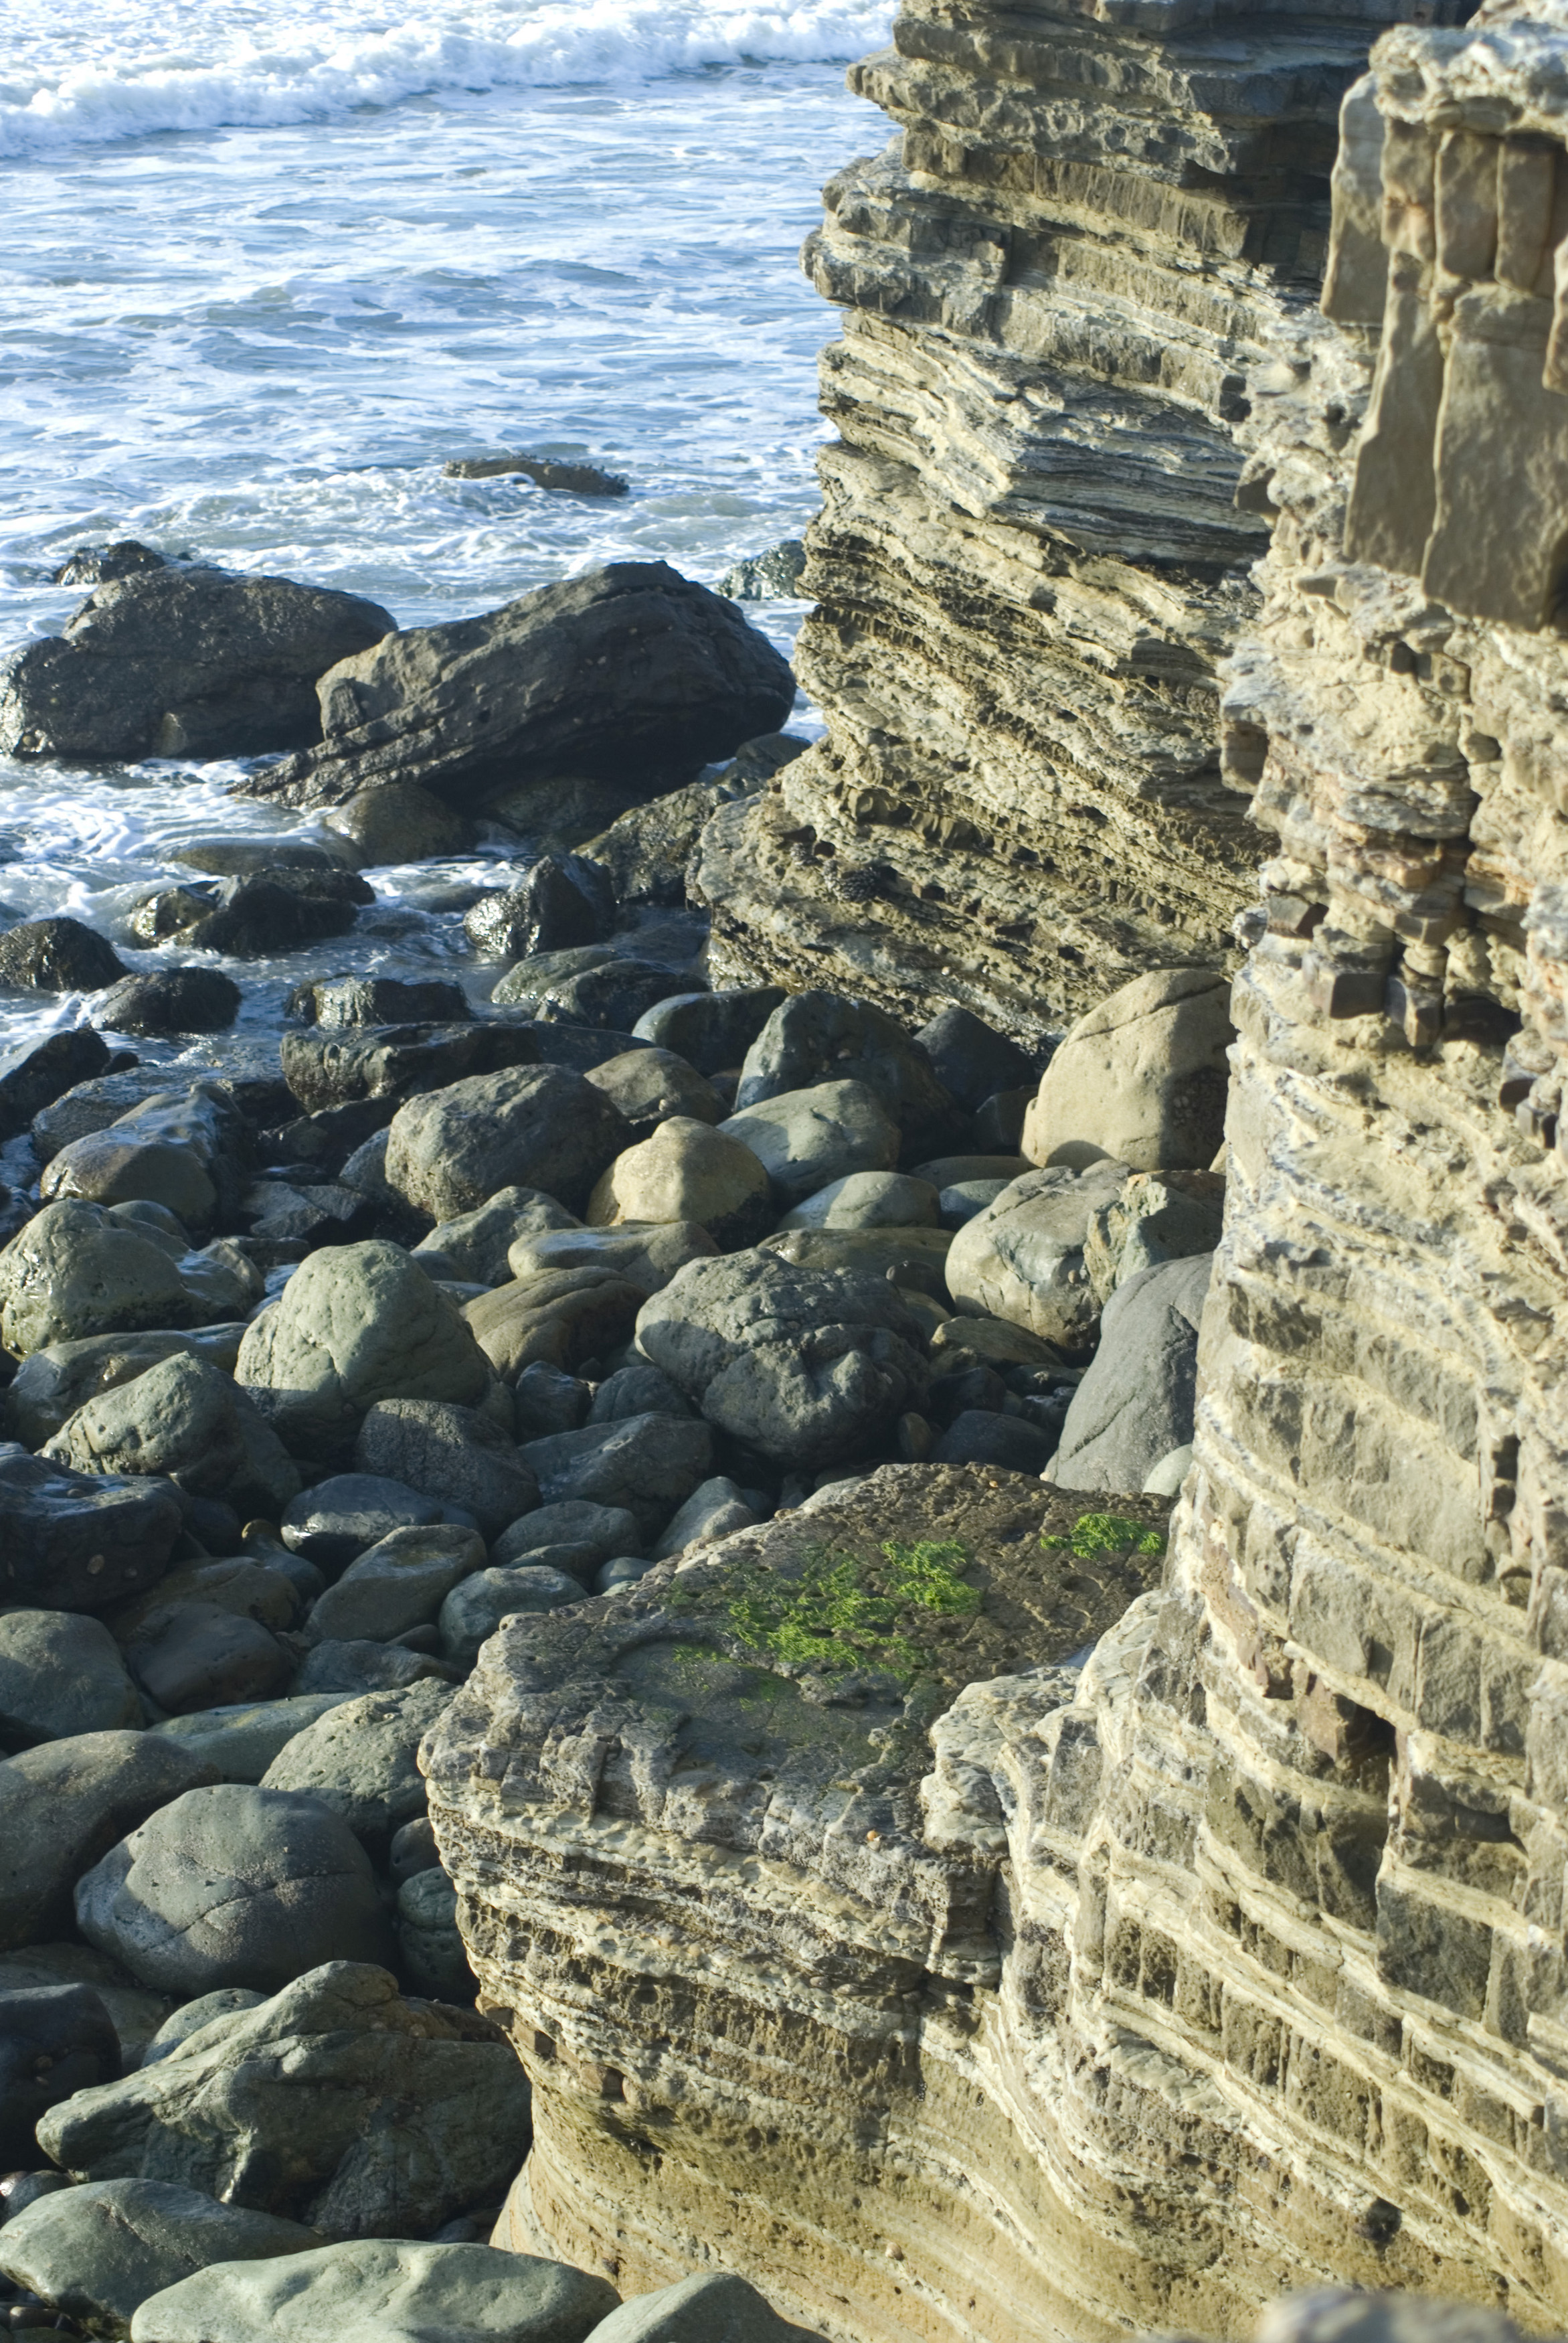 layered sedimentary cliffside rocks at cabrillo national monument, san diego california